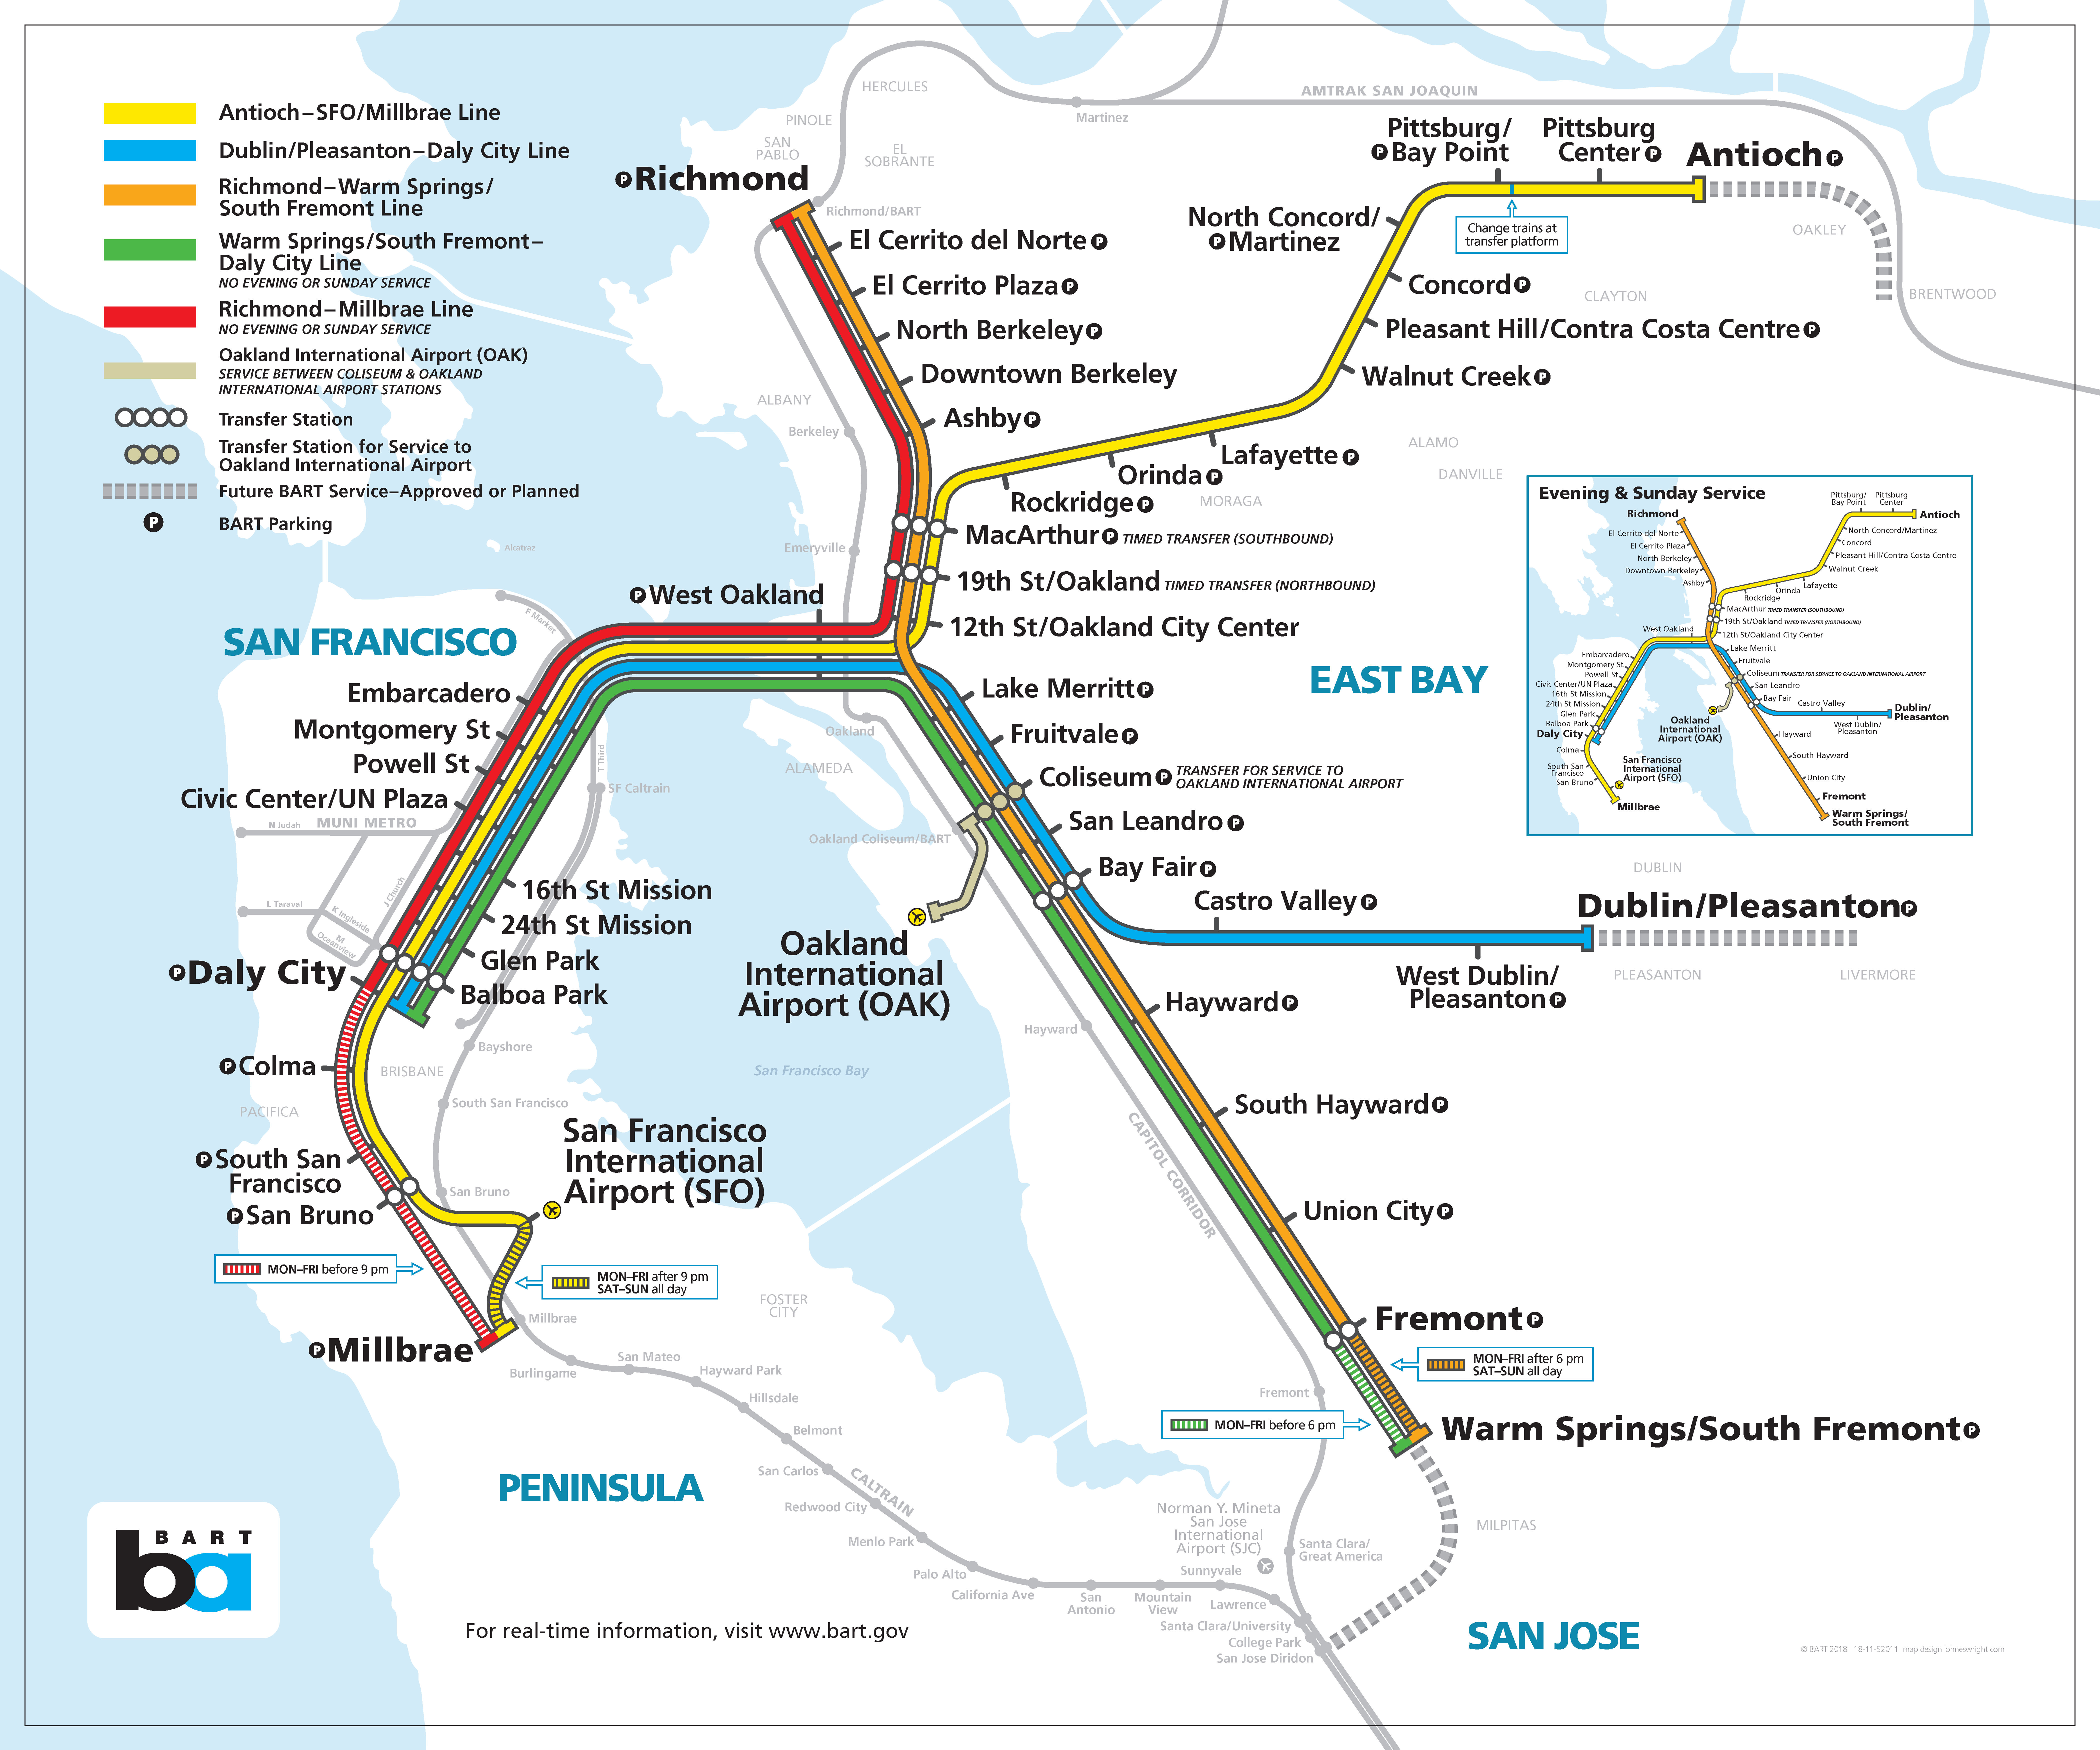 BART to Antioch: East Contra Costa BART Extension | bart.gov California Train Routes Map on california tourist map, california northern railroad map, california waterfalls map, japan bullet train map, northern california train map, california train vacations, california high speed train map, california railway map, california amusement parks map, california train map freight tracking, ca bullet train map, california layout map, california missions map by train, california bullet train,